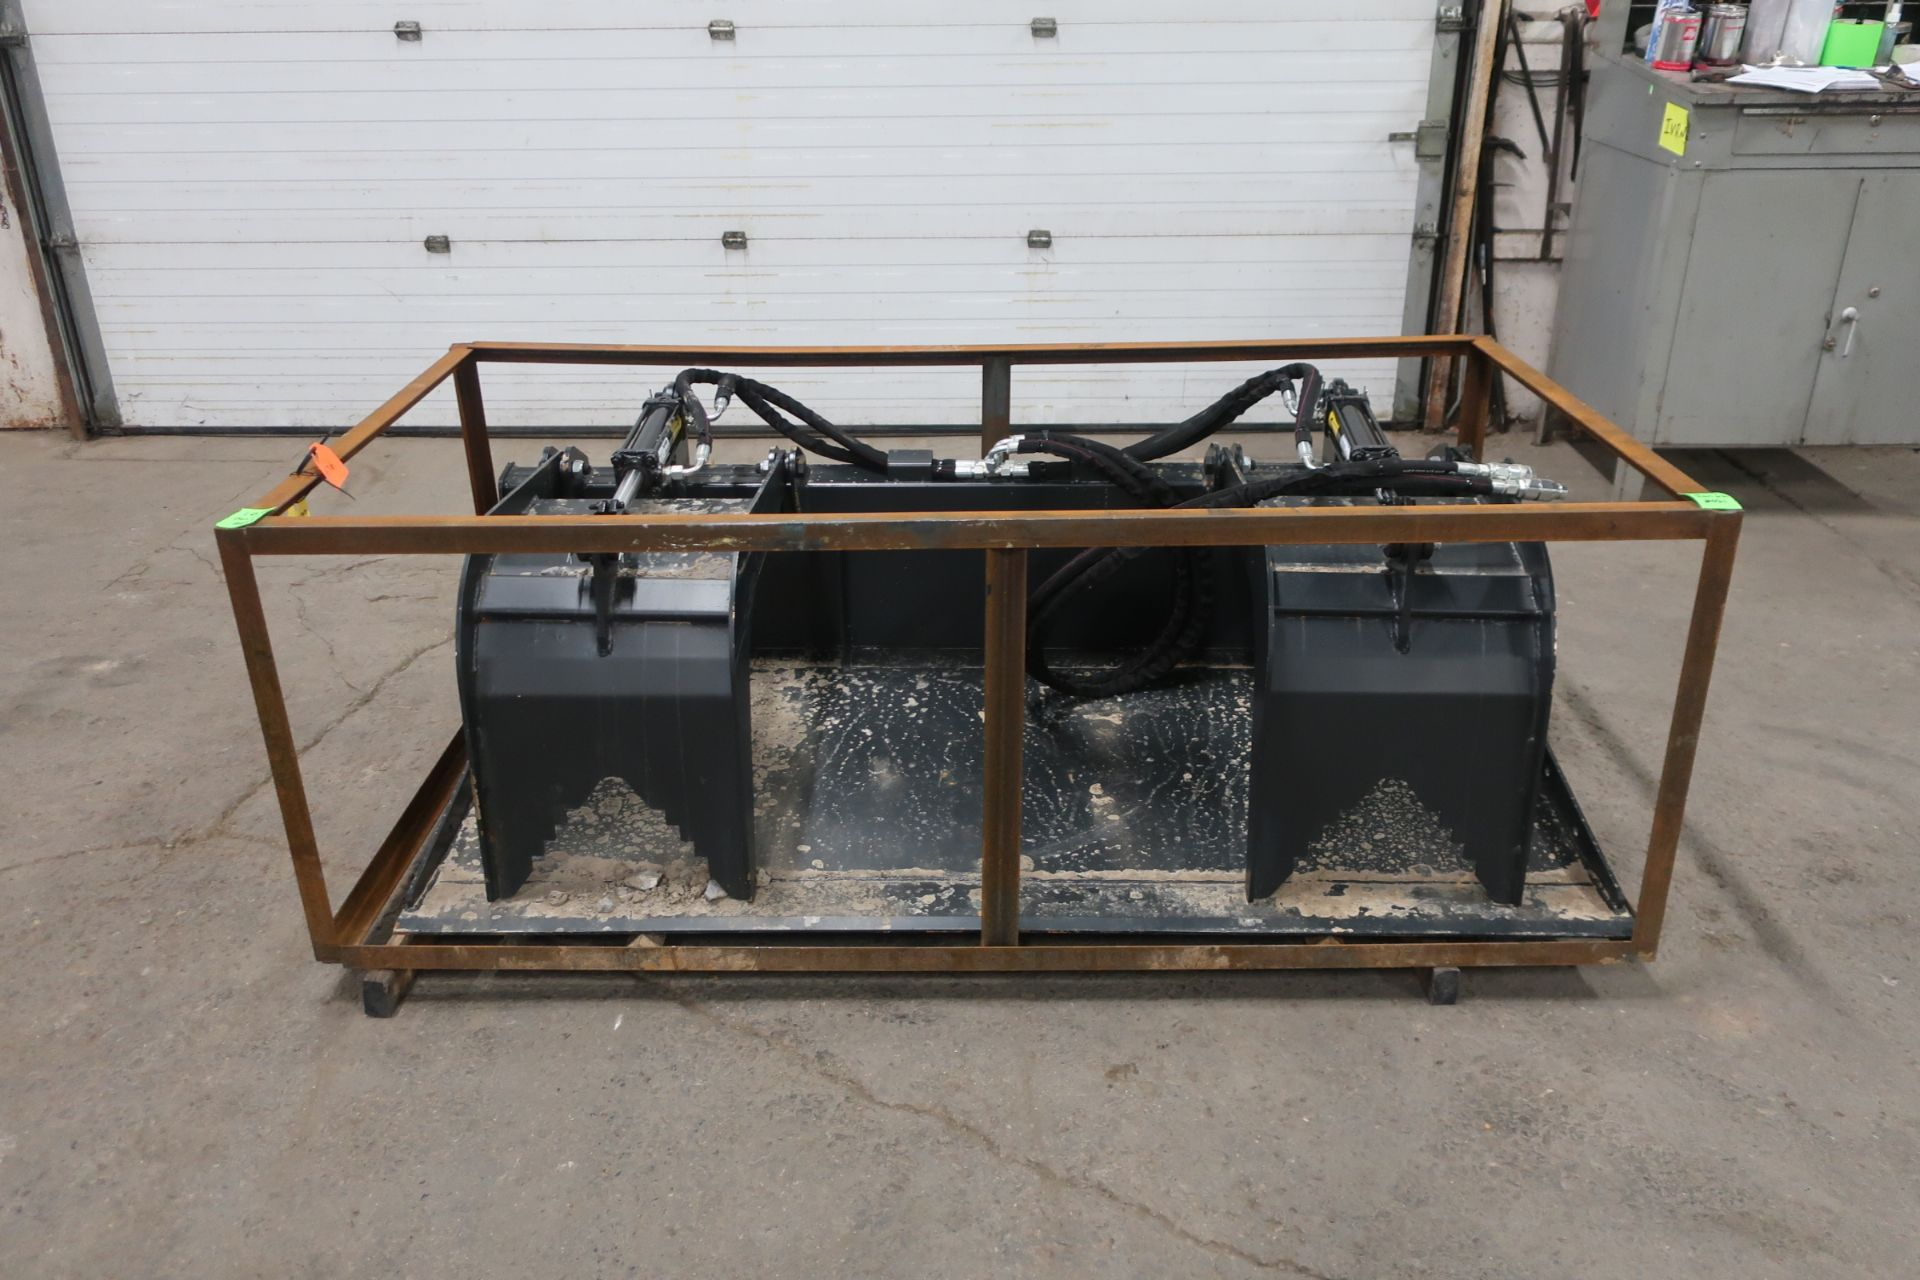 """NEW Wolverine Grapple Bucket 72"""" Width brand new grappling bucket attachment - Image 3 of 3"""